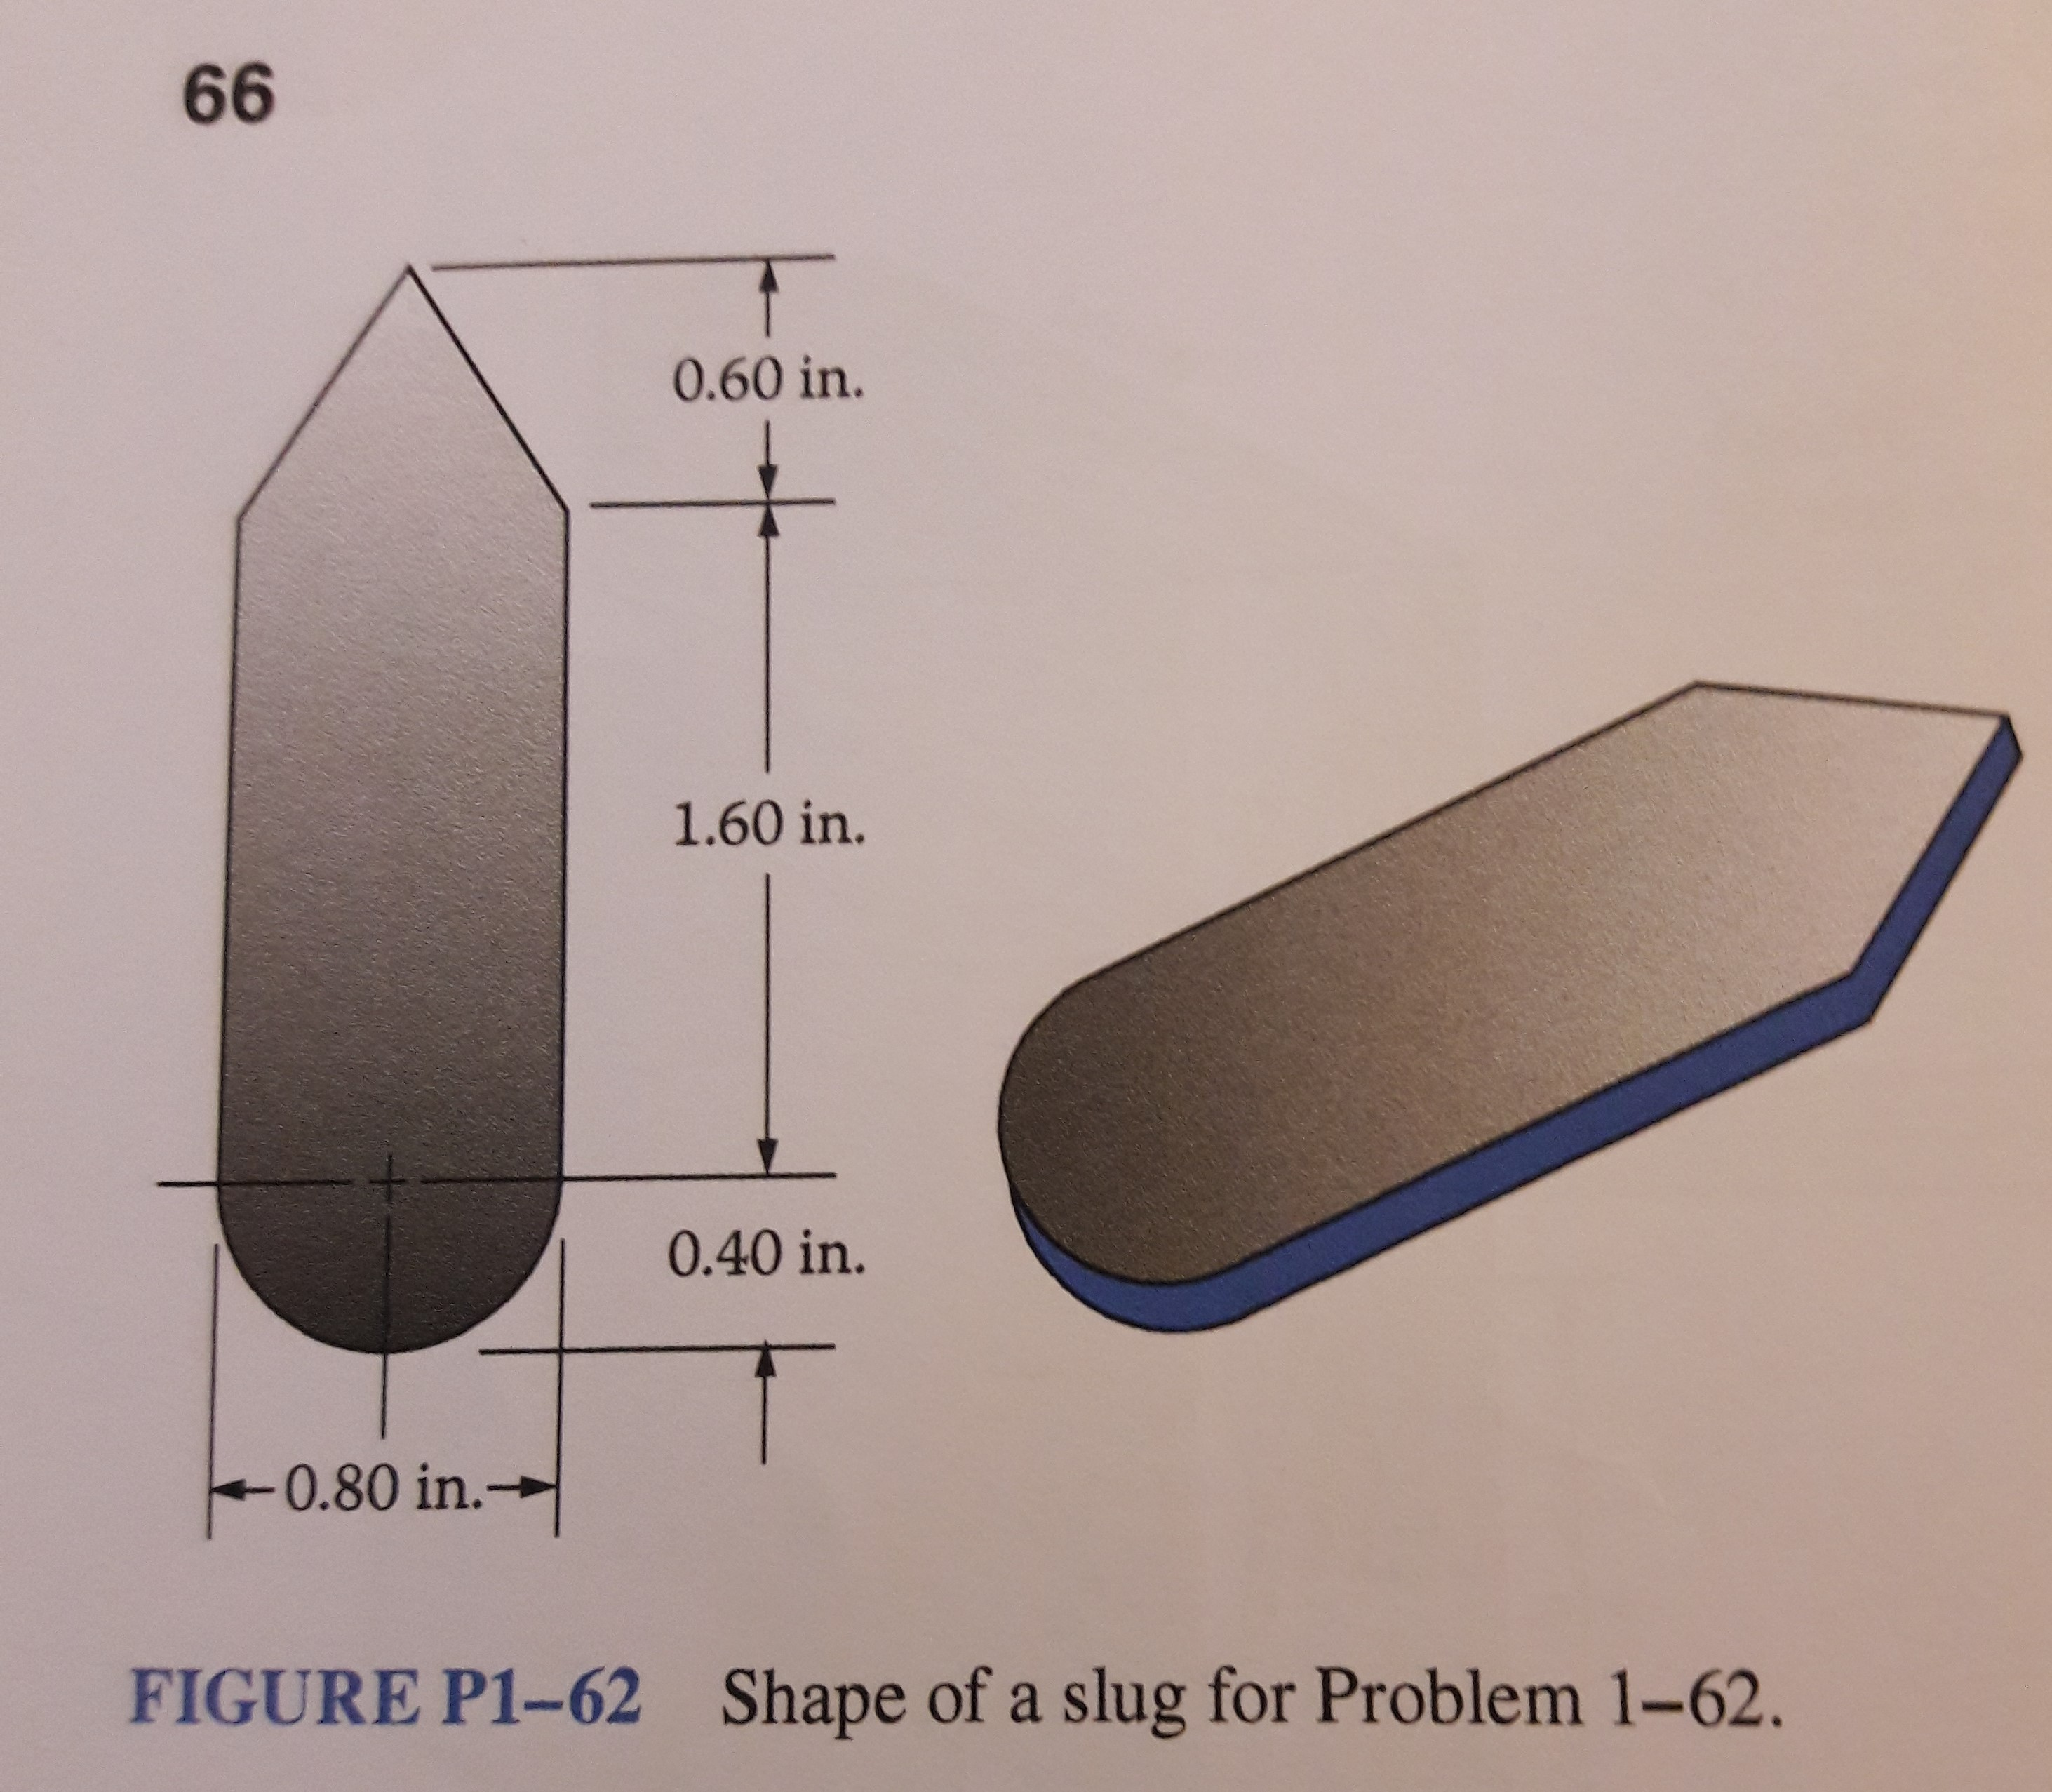 66 0.60 in. 1.60 in. 0.40 in. -0.80 in.- → Shape of a slug for Problem 1-62. FIGURE P1-62